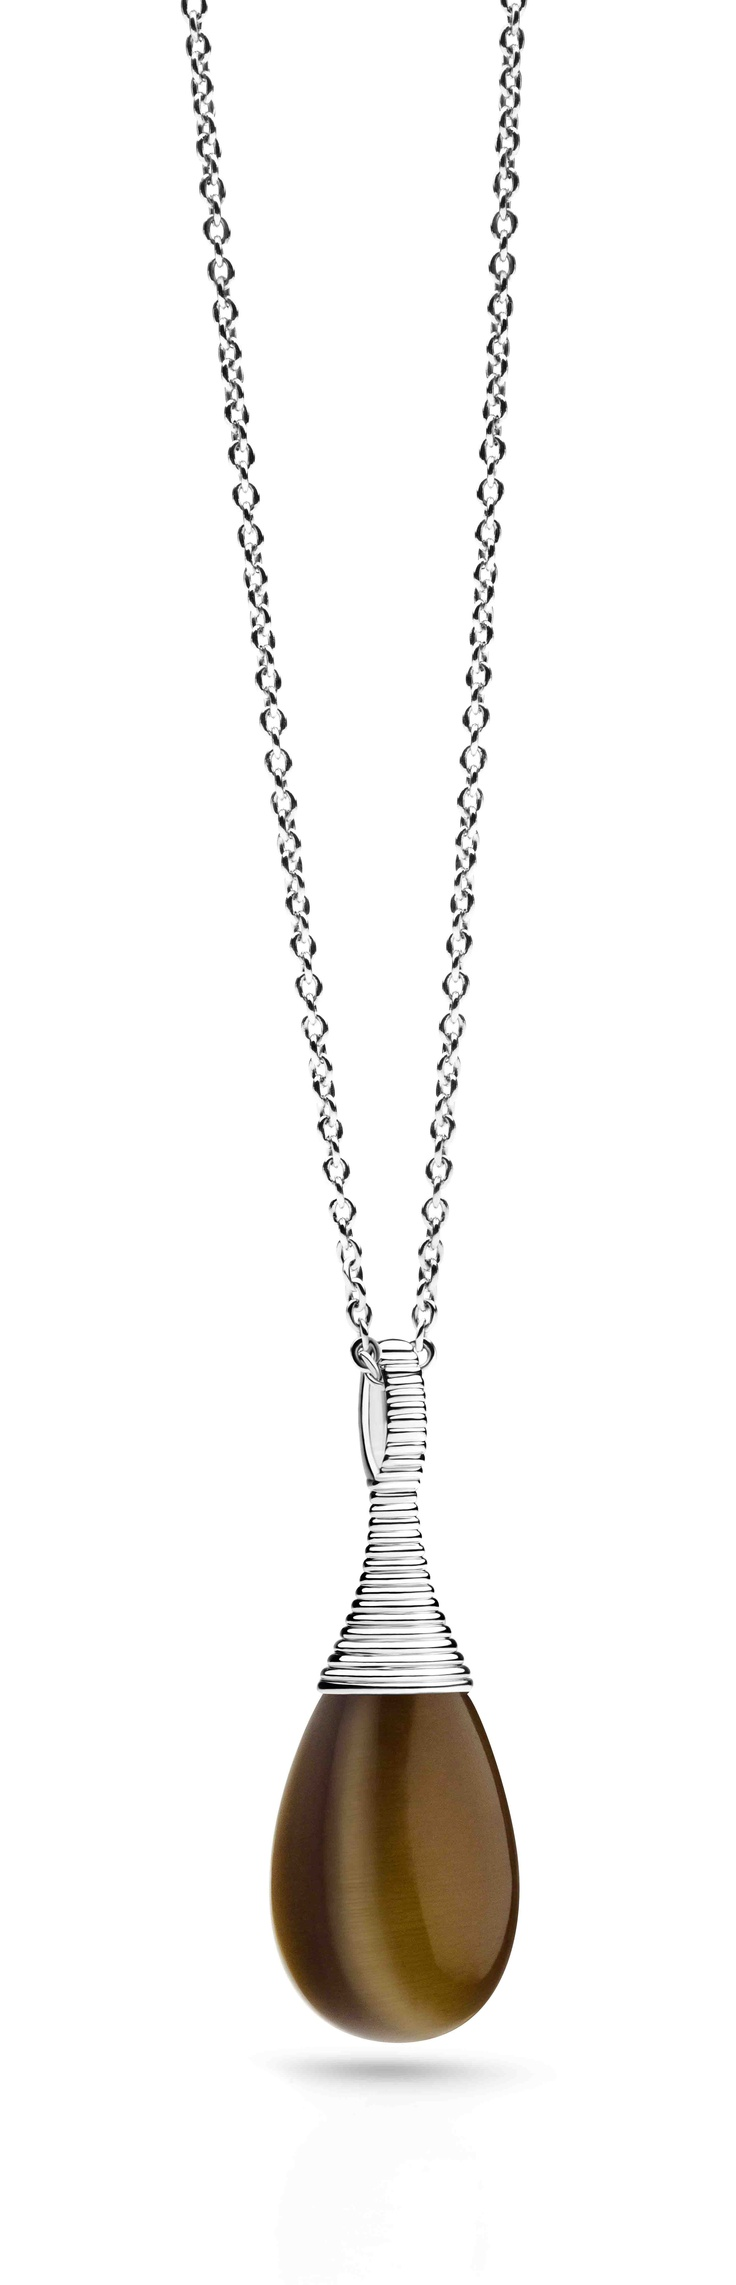 Ti Sento Milano Curve collection necklace and pendant